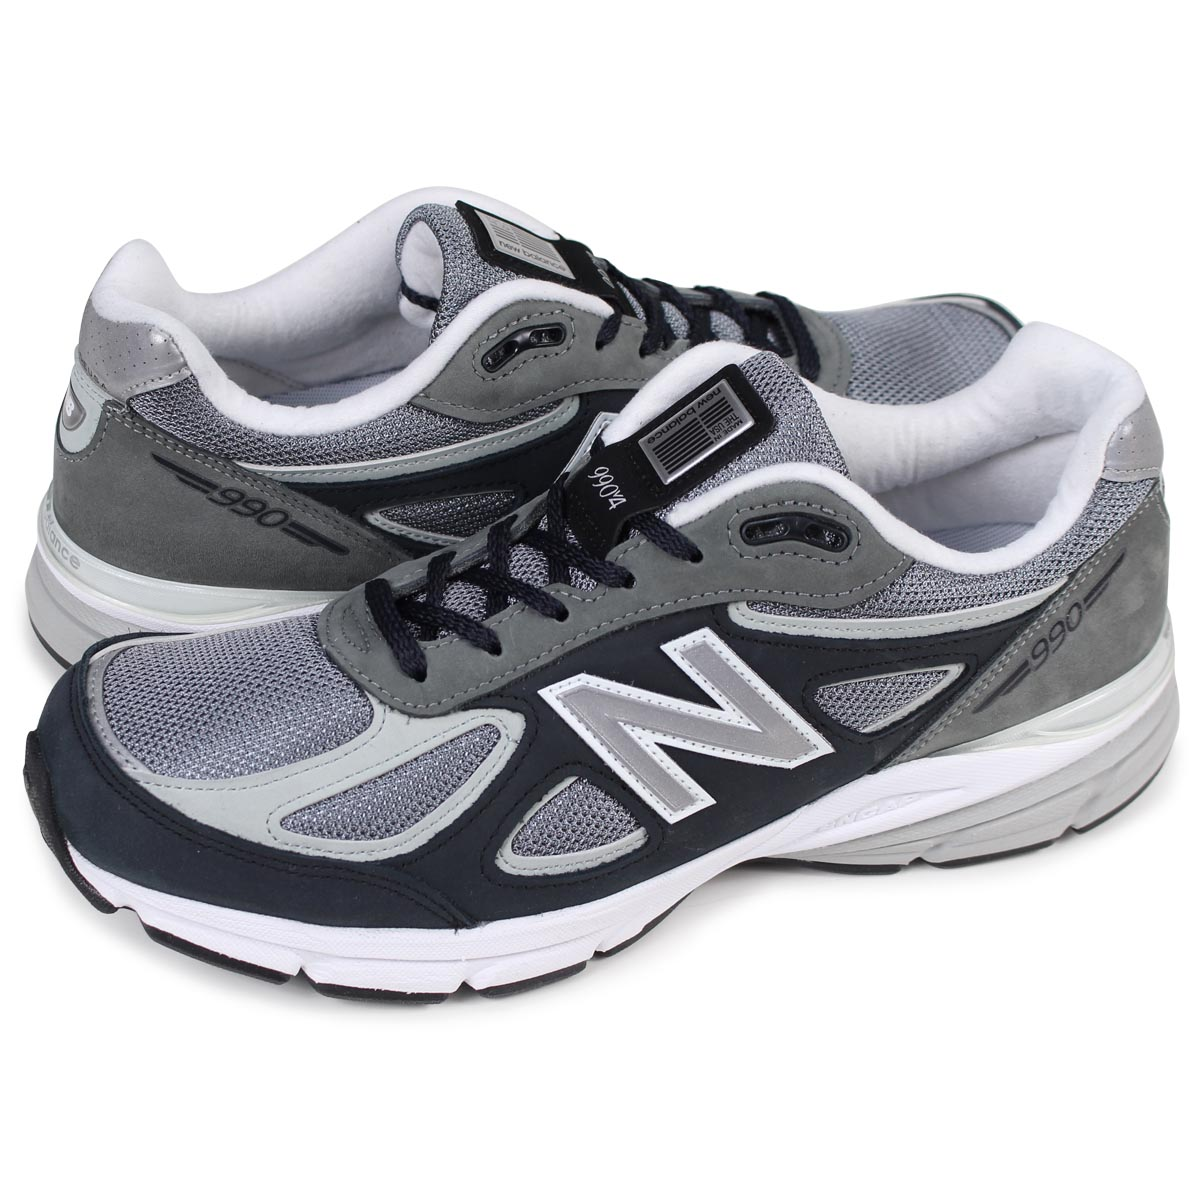 reputable site c5ee0 90db9 new balance M990XG4 MADE IN USA New Balance 990 men's sneakers D Wise gray  [193]